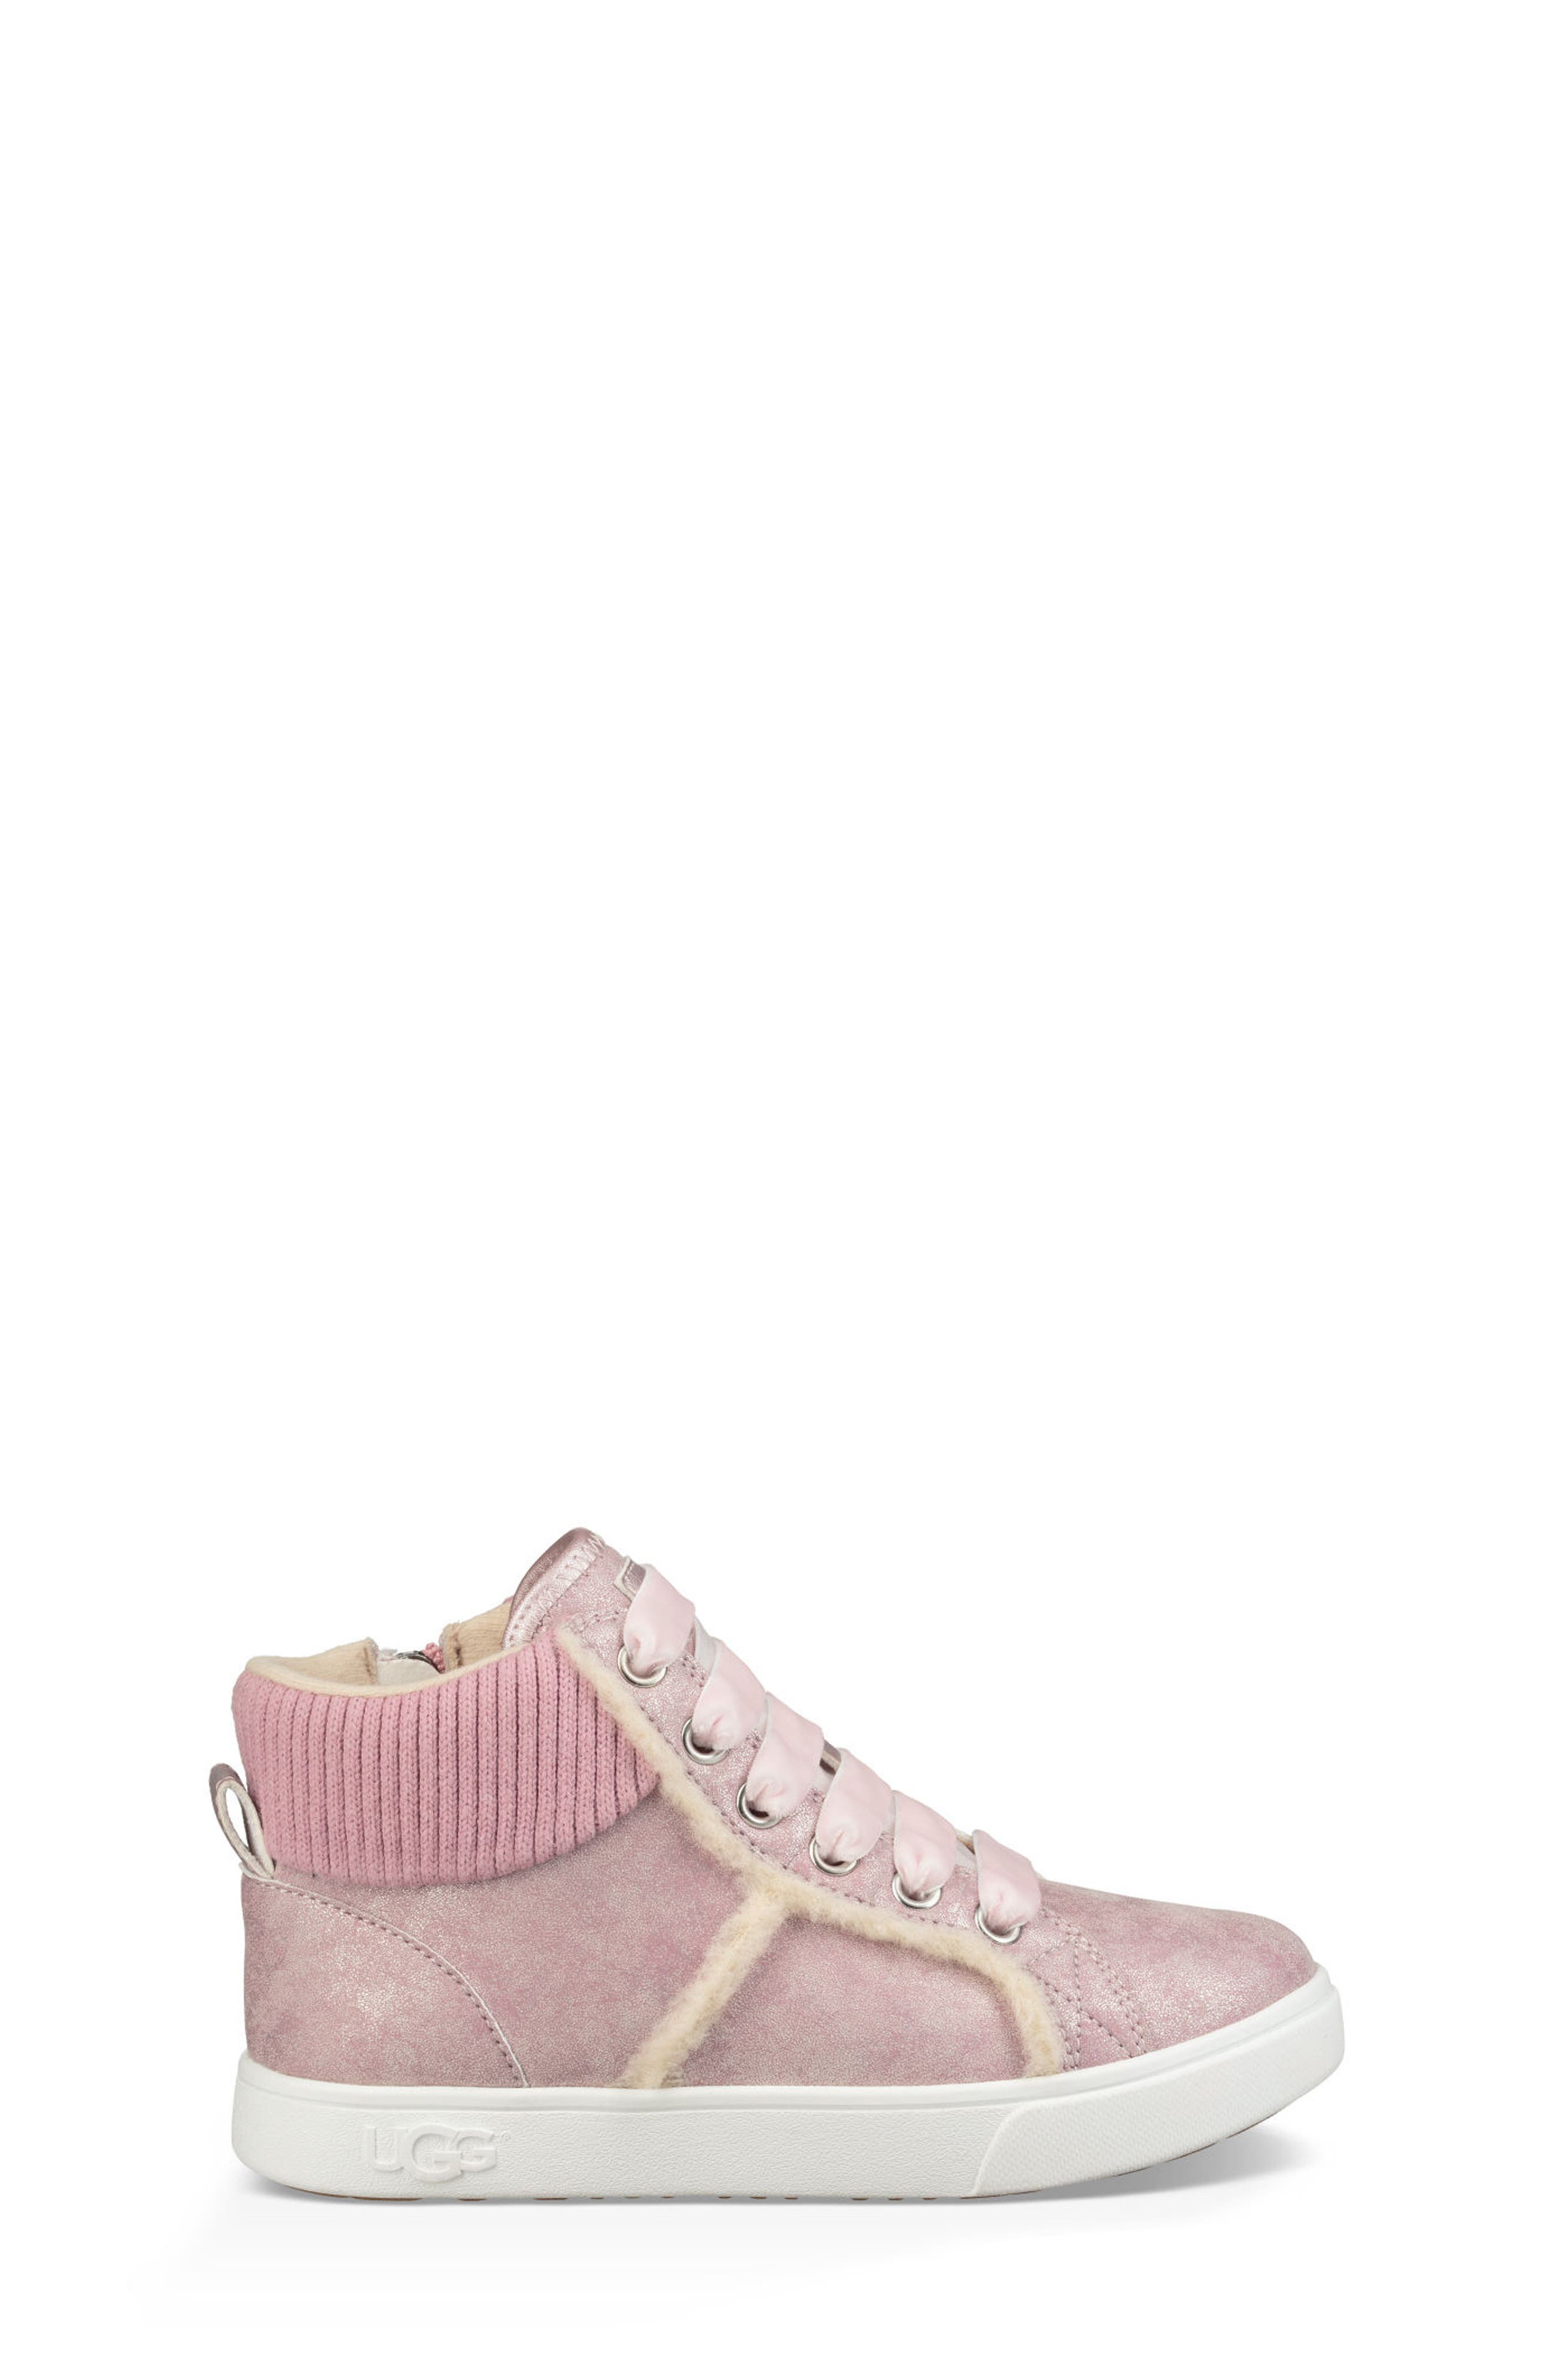 Addie Genuine Shearling High Top Sneaker,                             Alternate thumbnail 4, color,                             Cameo Pink